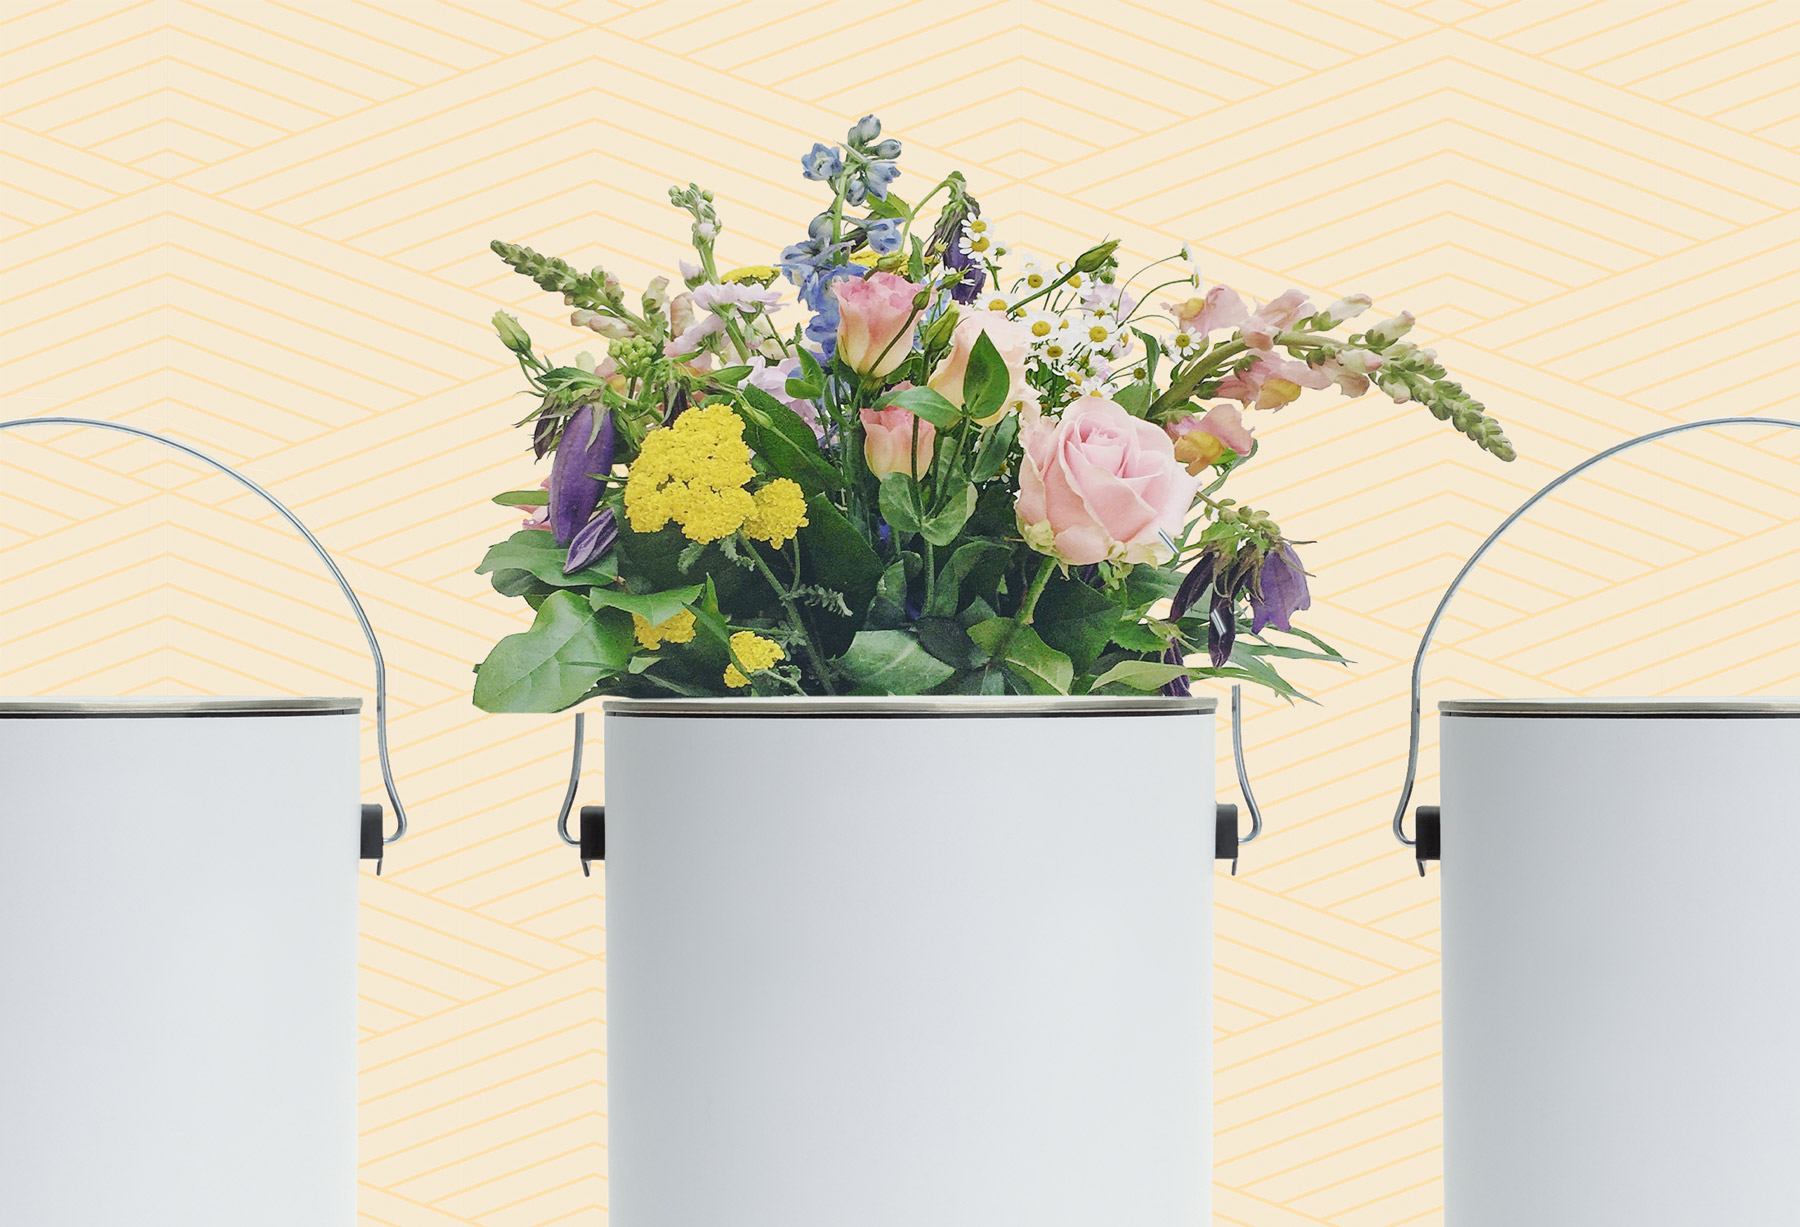 Flower-Inspired Paint Colors - flowers in paint can